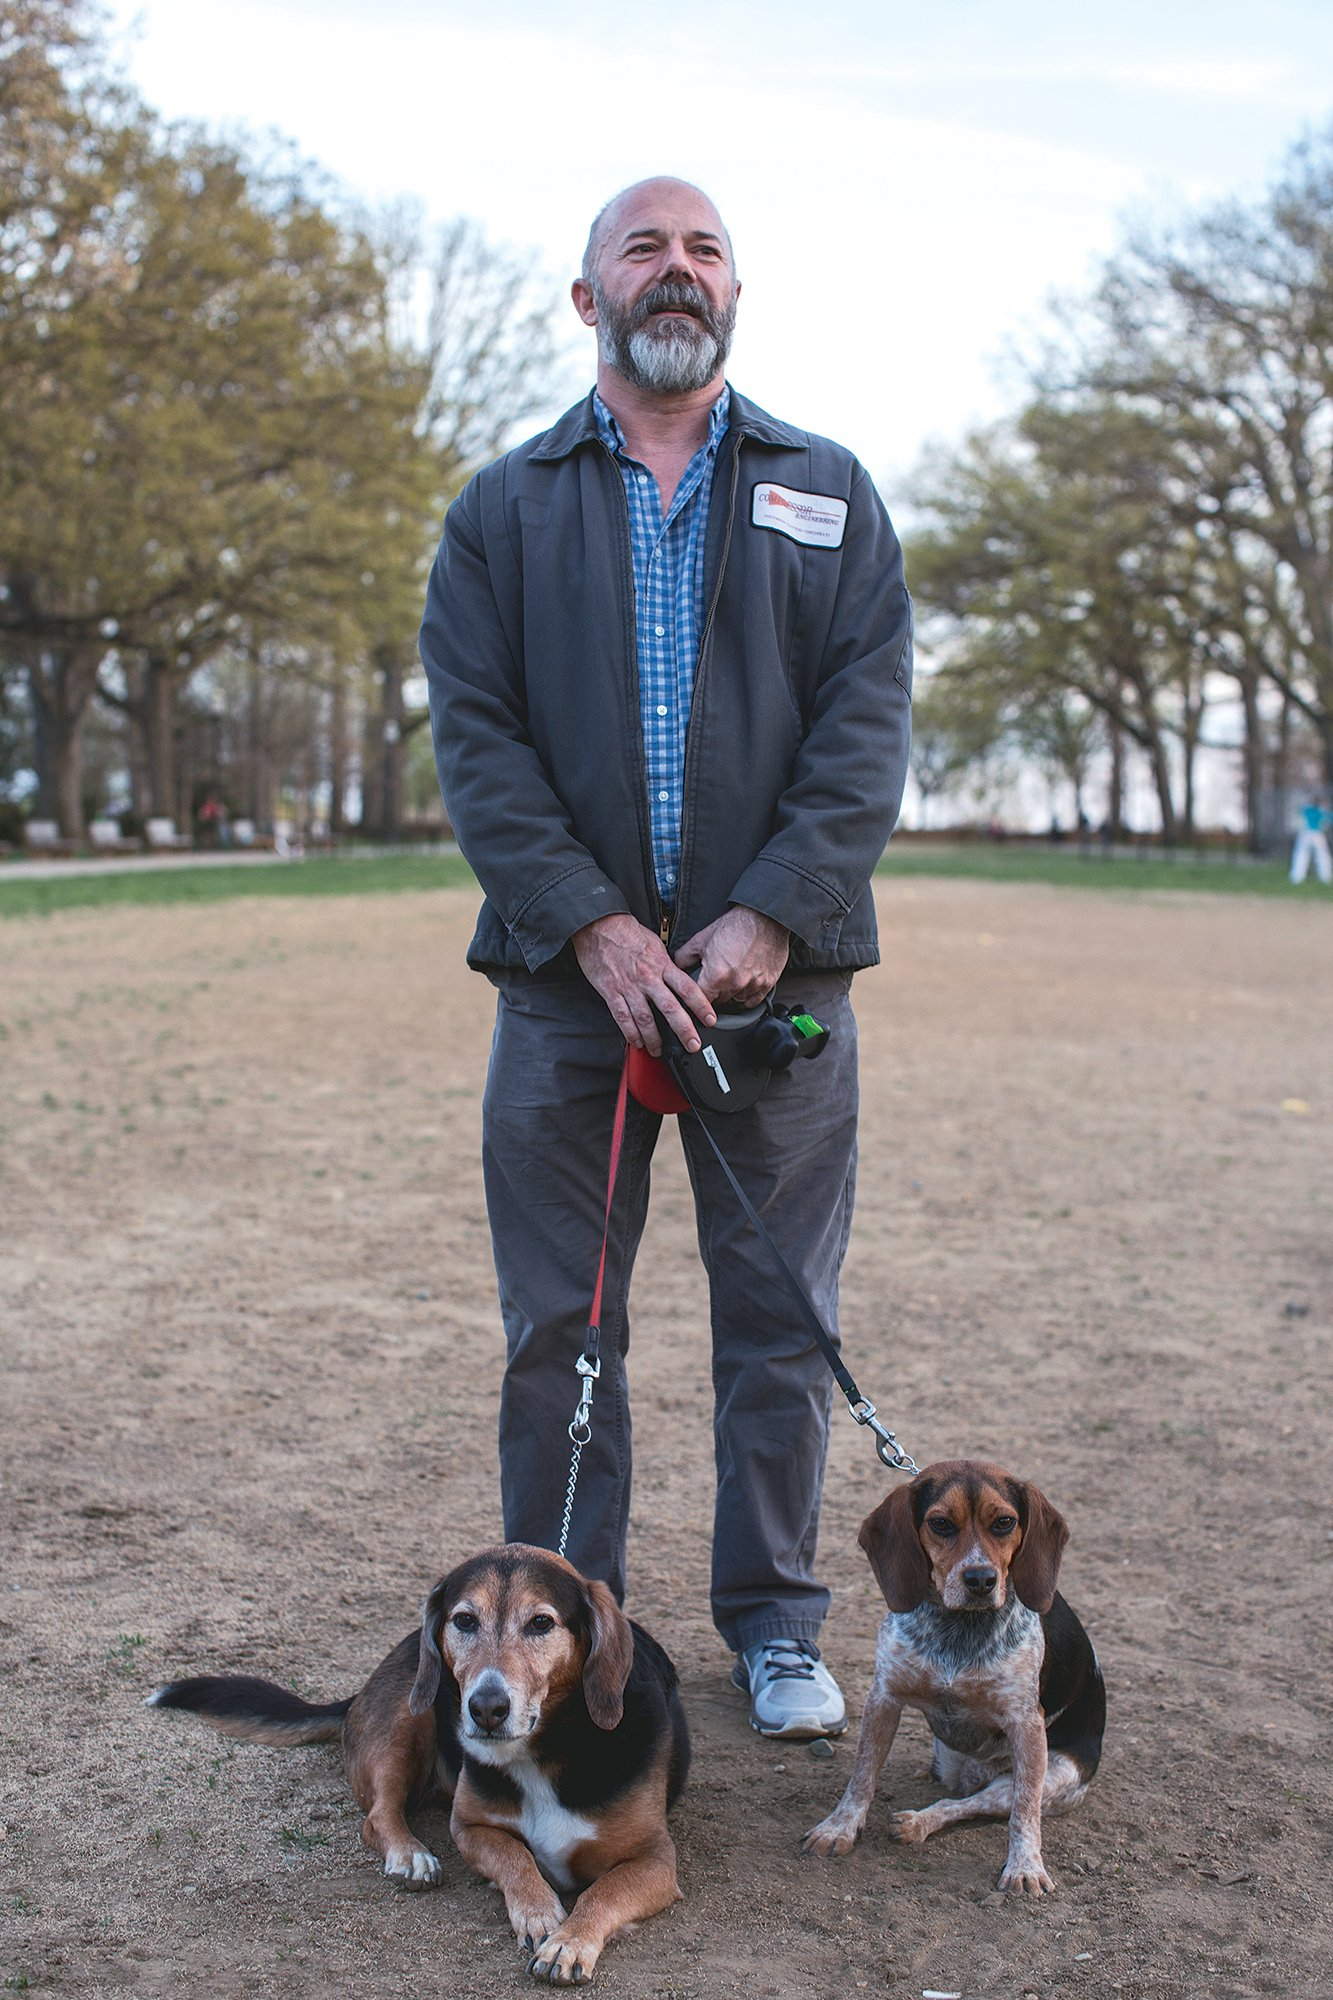 Sullivan with his dogs in Meridian Hill Park. Photograph by Joshua Cogan.